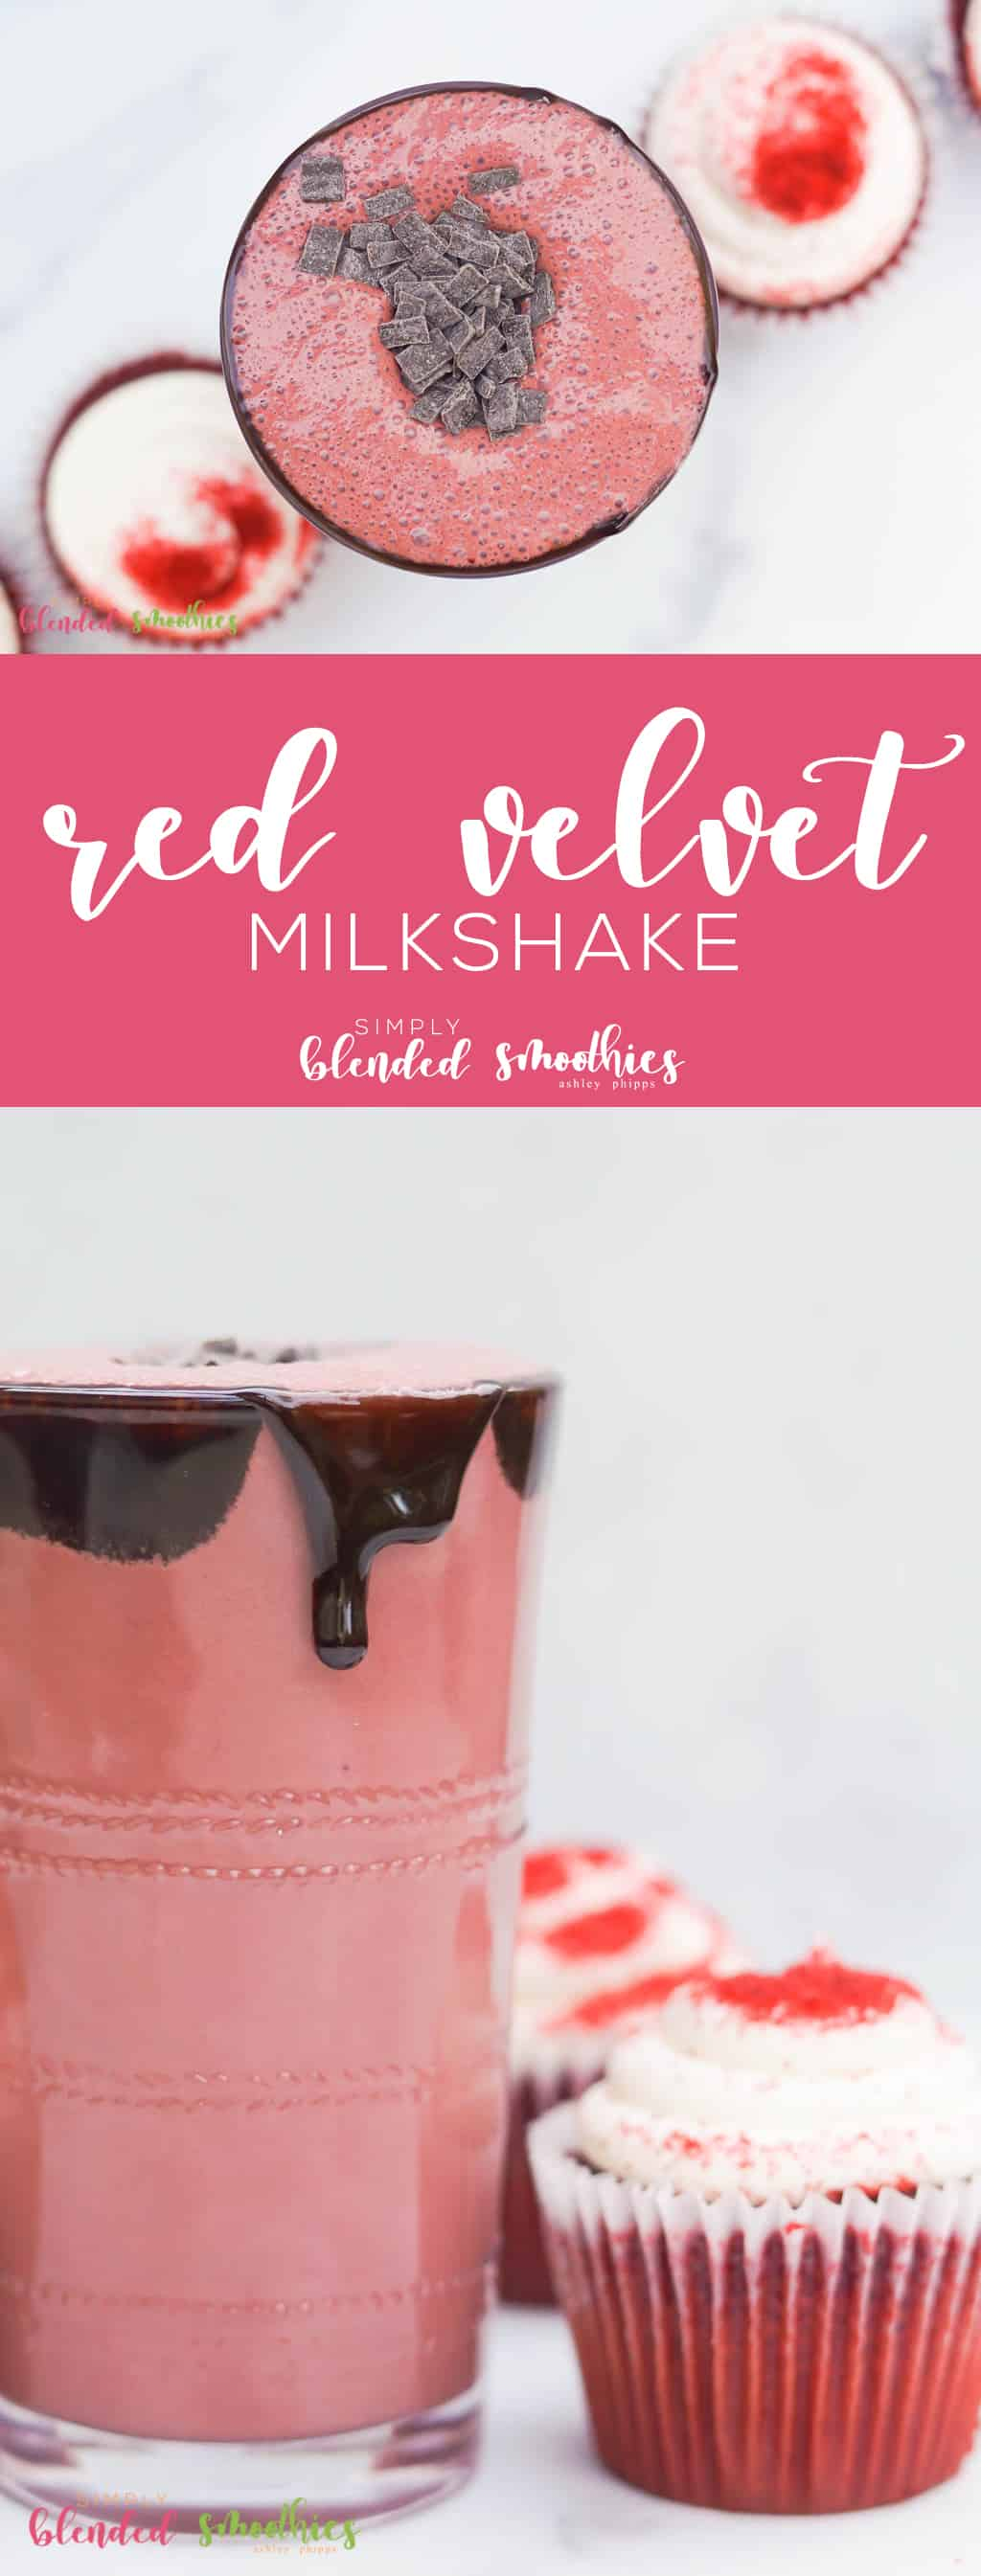 red velvet milkshake - this delicious and so easy to make red velvet milkshake is a great dessert any time of year but extra special around valentines day